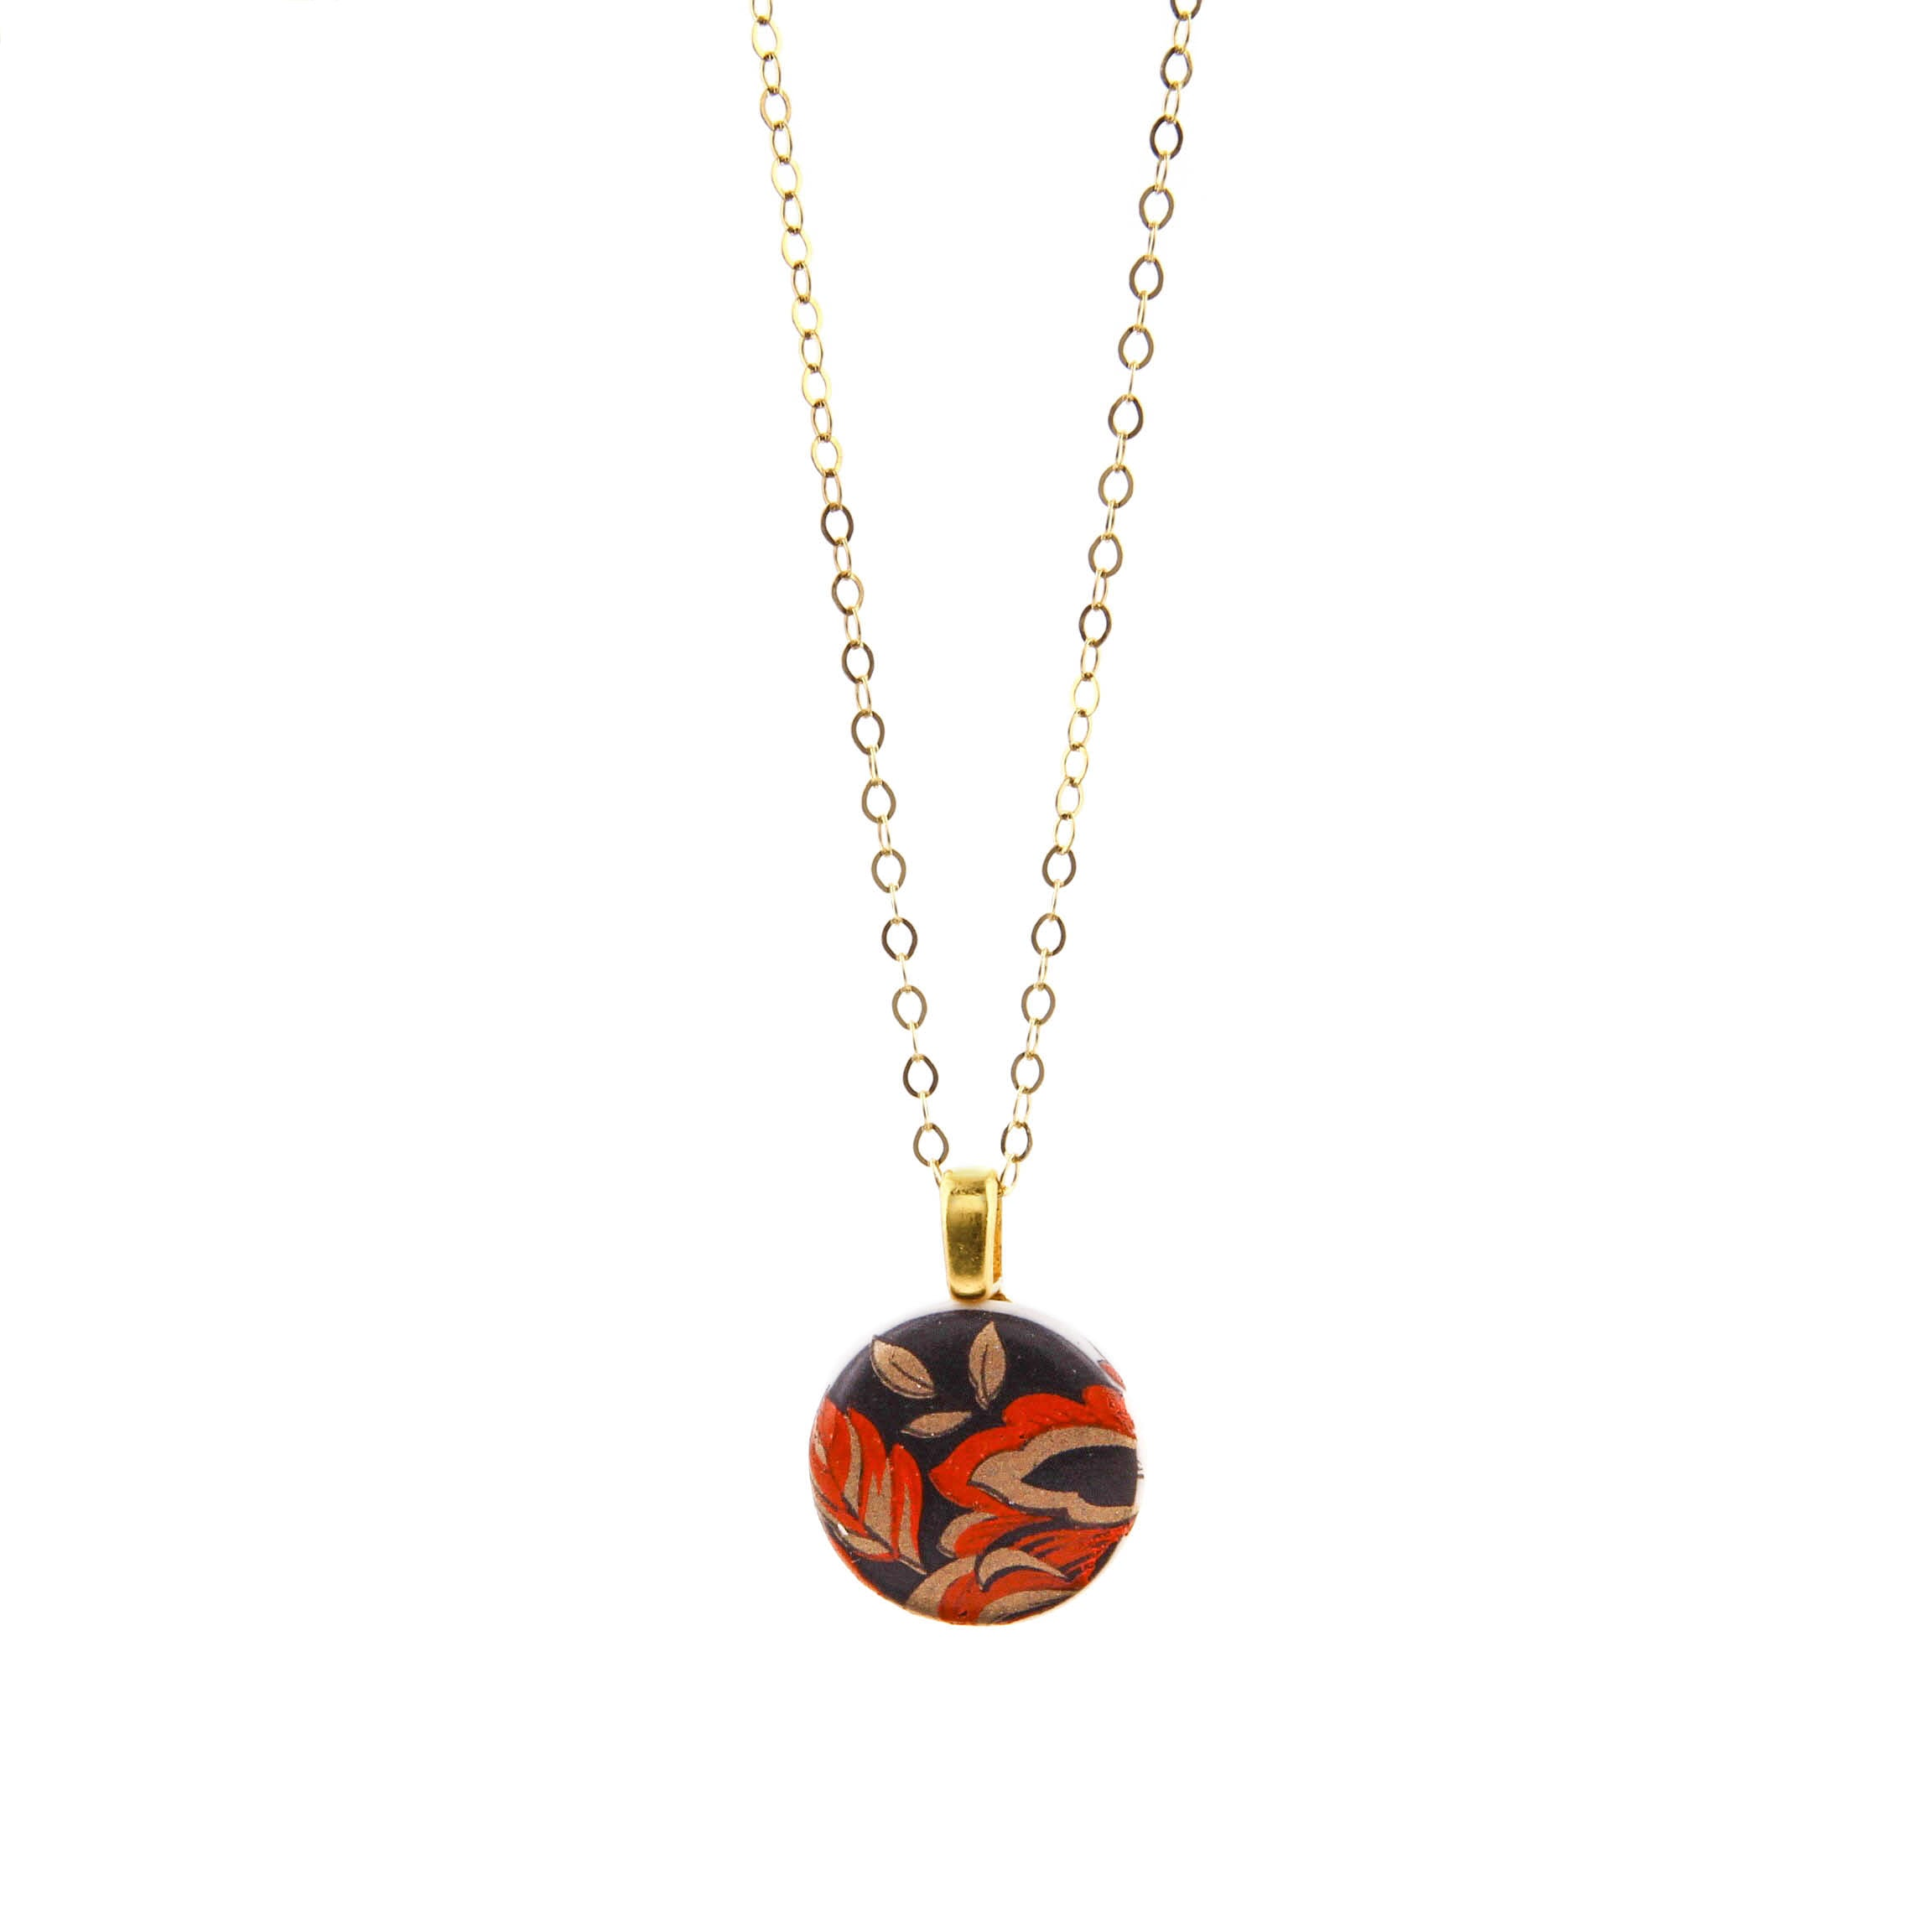 Melanie Sherman, Red Flower on Black Porcelain Pendant Necklace